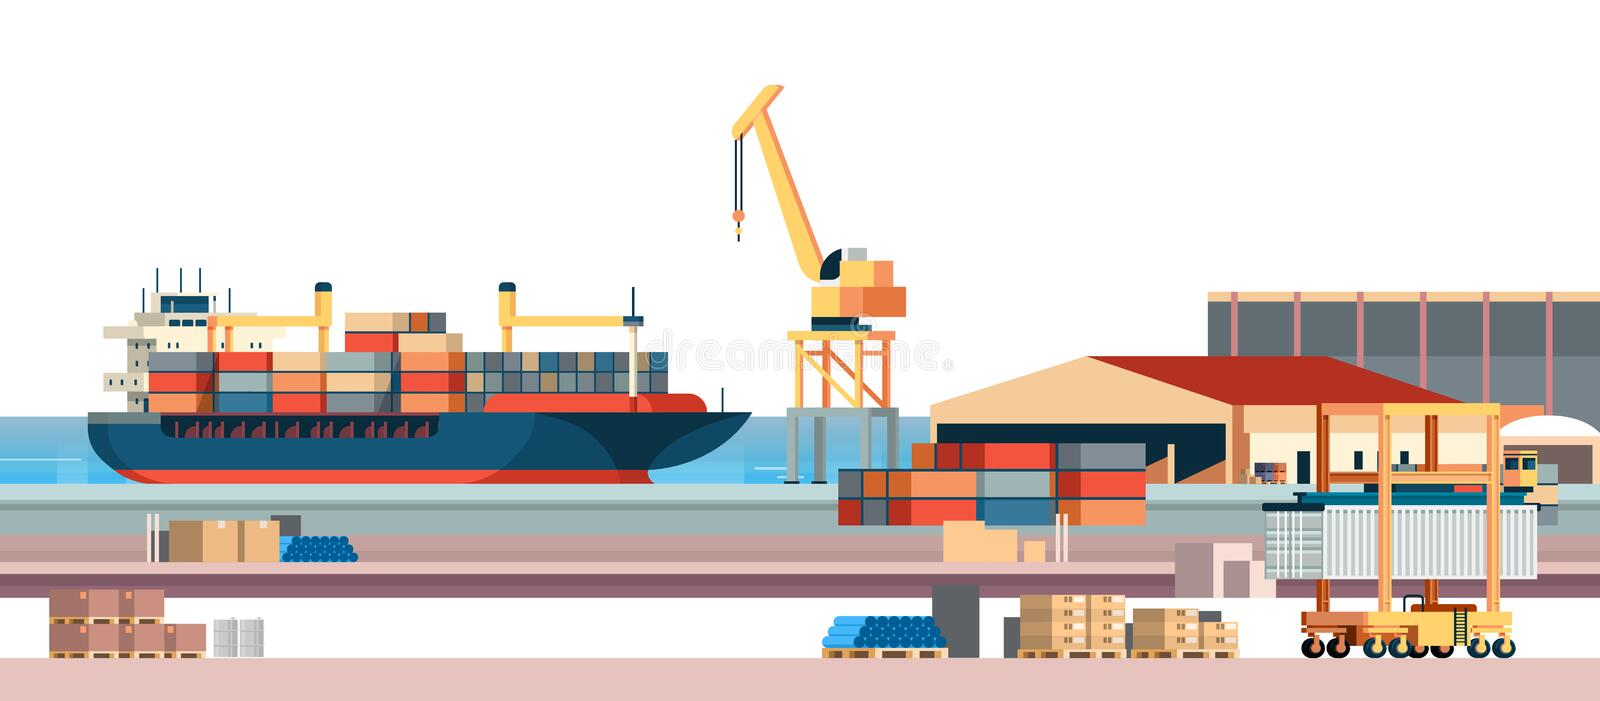 Industrial sea port cargo logistics container import export freight ship crane water delivery transportation concept vector illustration